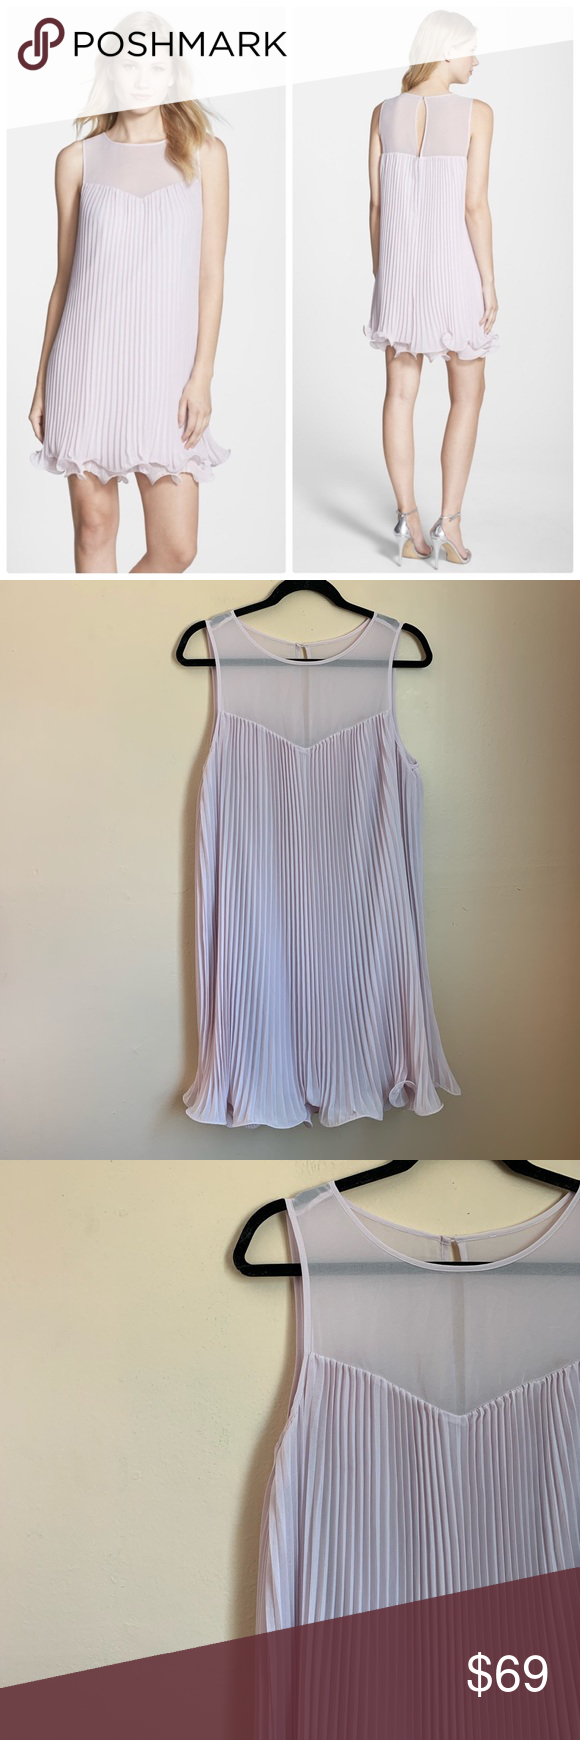 8fa8cfd2056 Erin Fetherston pleated Chiffon Shift Dress lilac Good pre owned condition  True to size Light semi